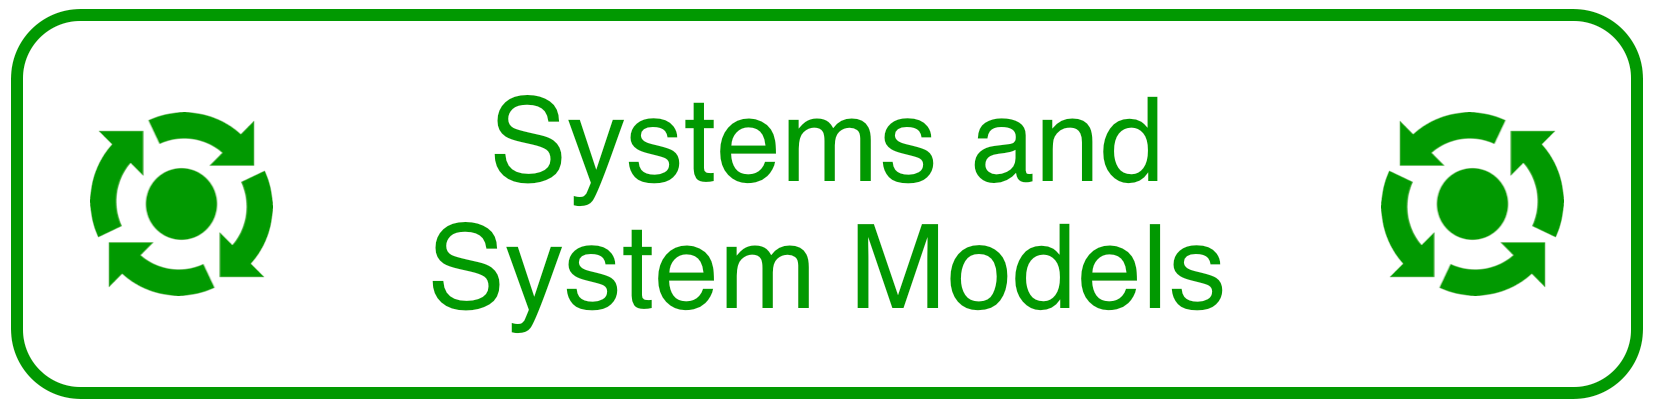 Systems_and_System_Models.png